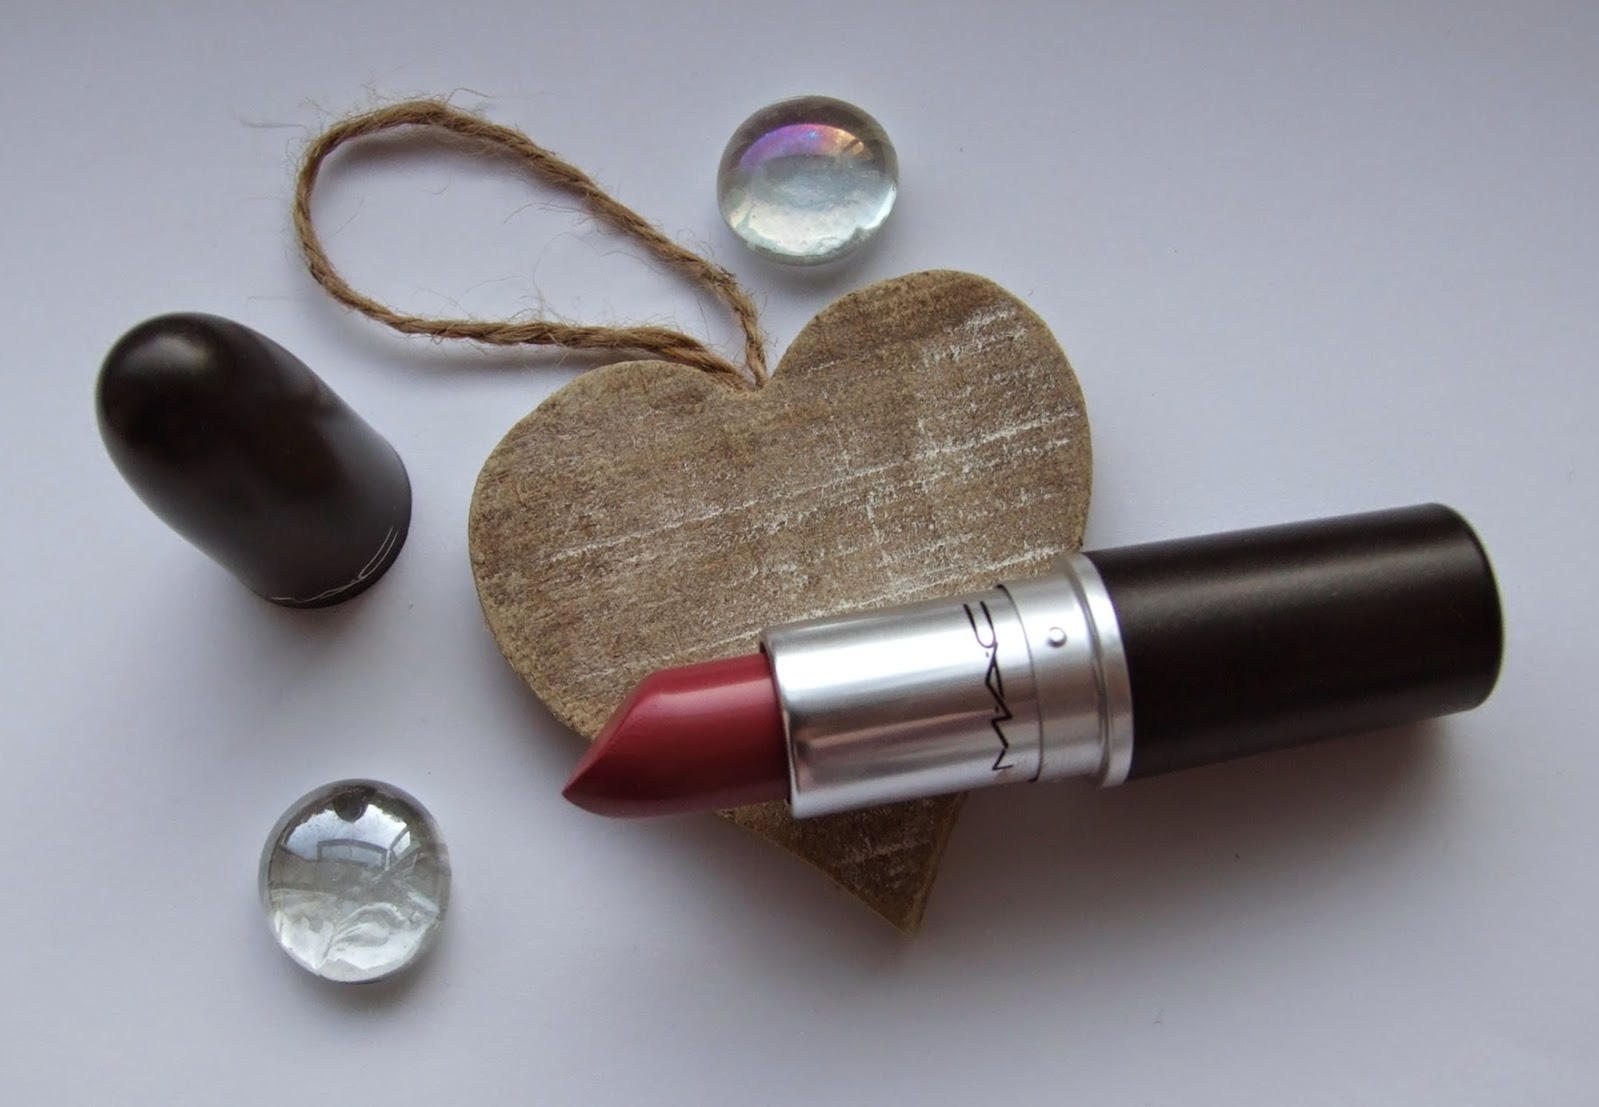 MAC Yield to love lipstick swatches A novel romance